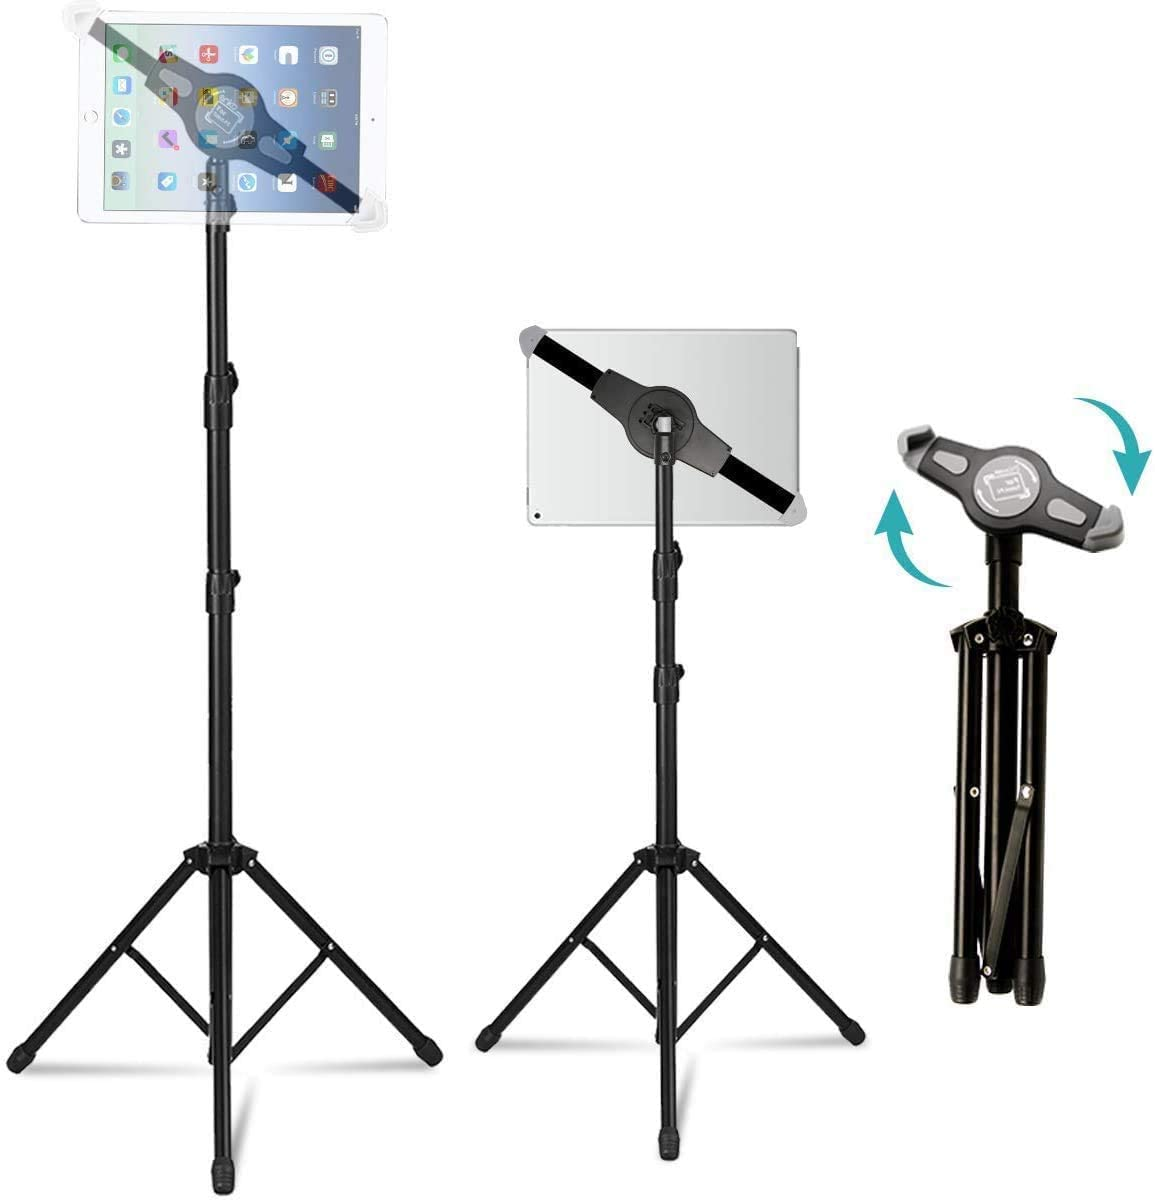 Padom IPad and Mobile Phone Tripod Stand, Height Adjustable 20 to 60 Inch with 360 Degree Rotating Tablet Holder for iPad Air,iPad Pro and More 9.5 to 14.5 Inch Tablets, Coming with Carrying Bag